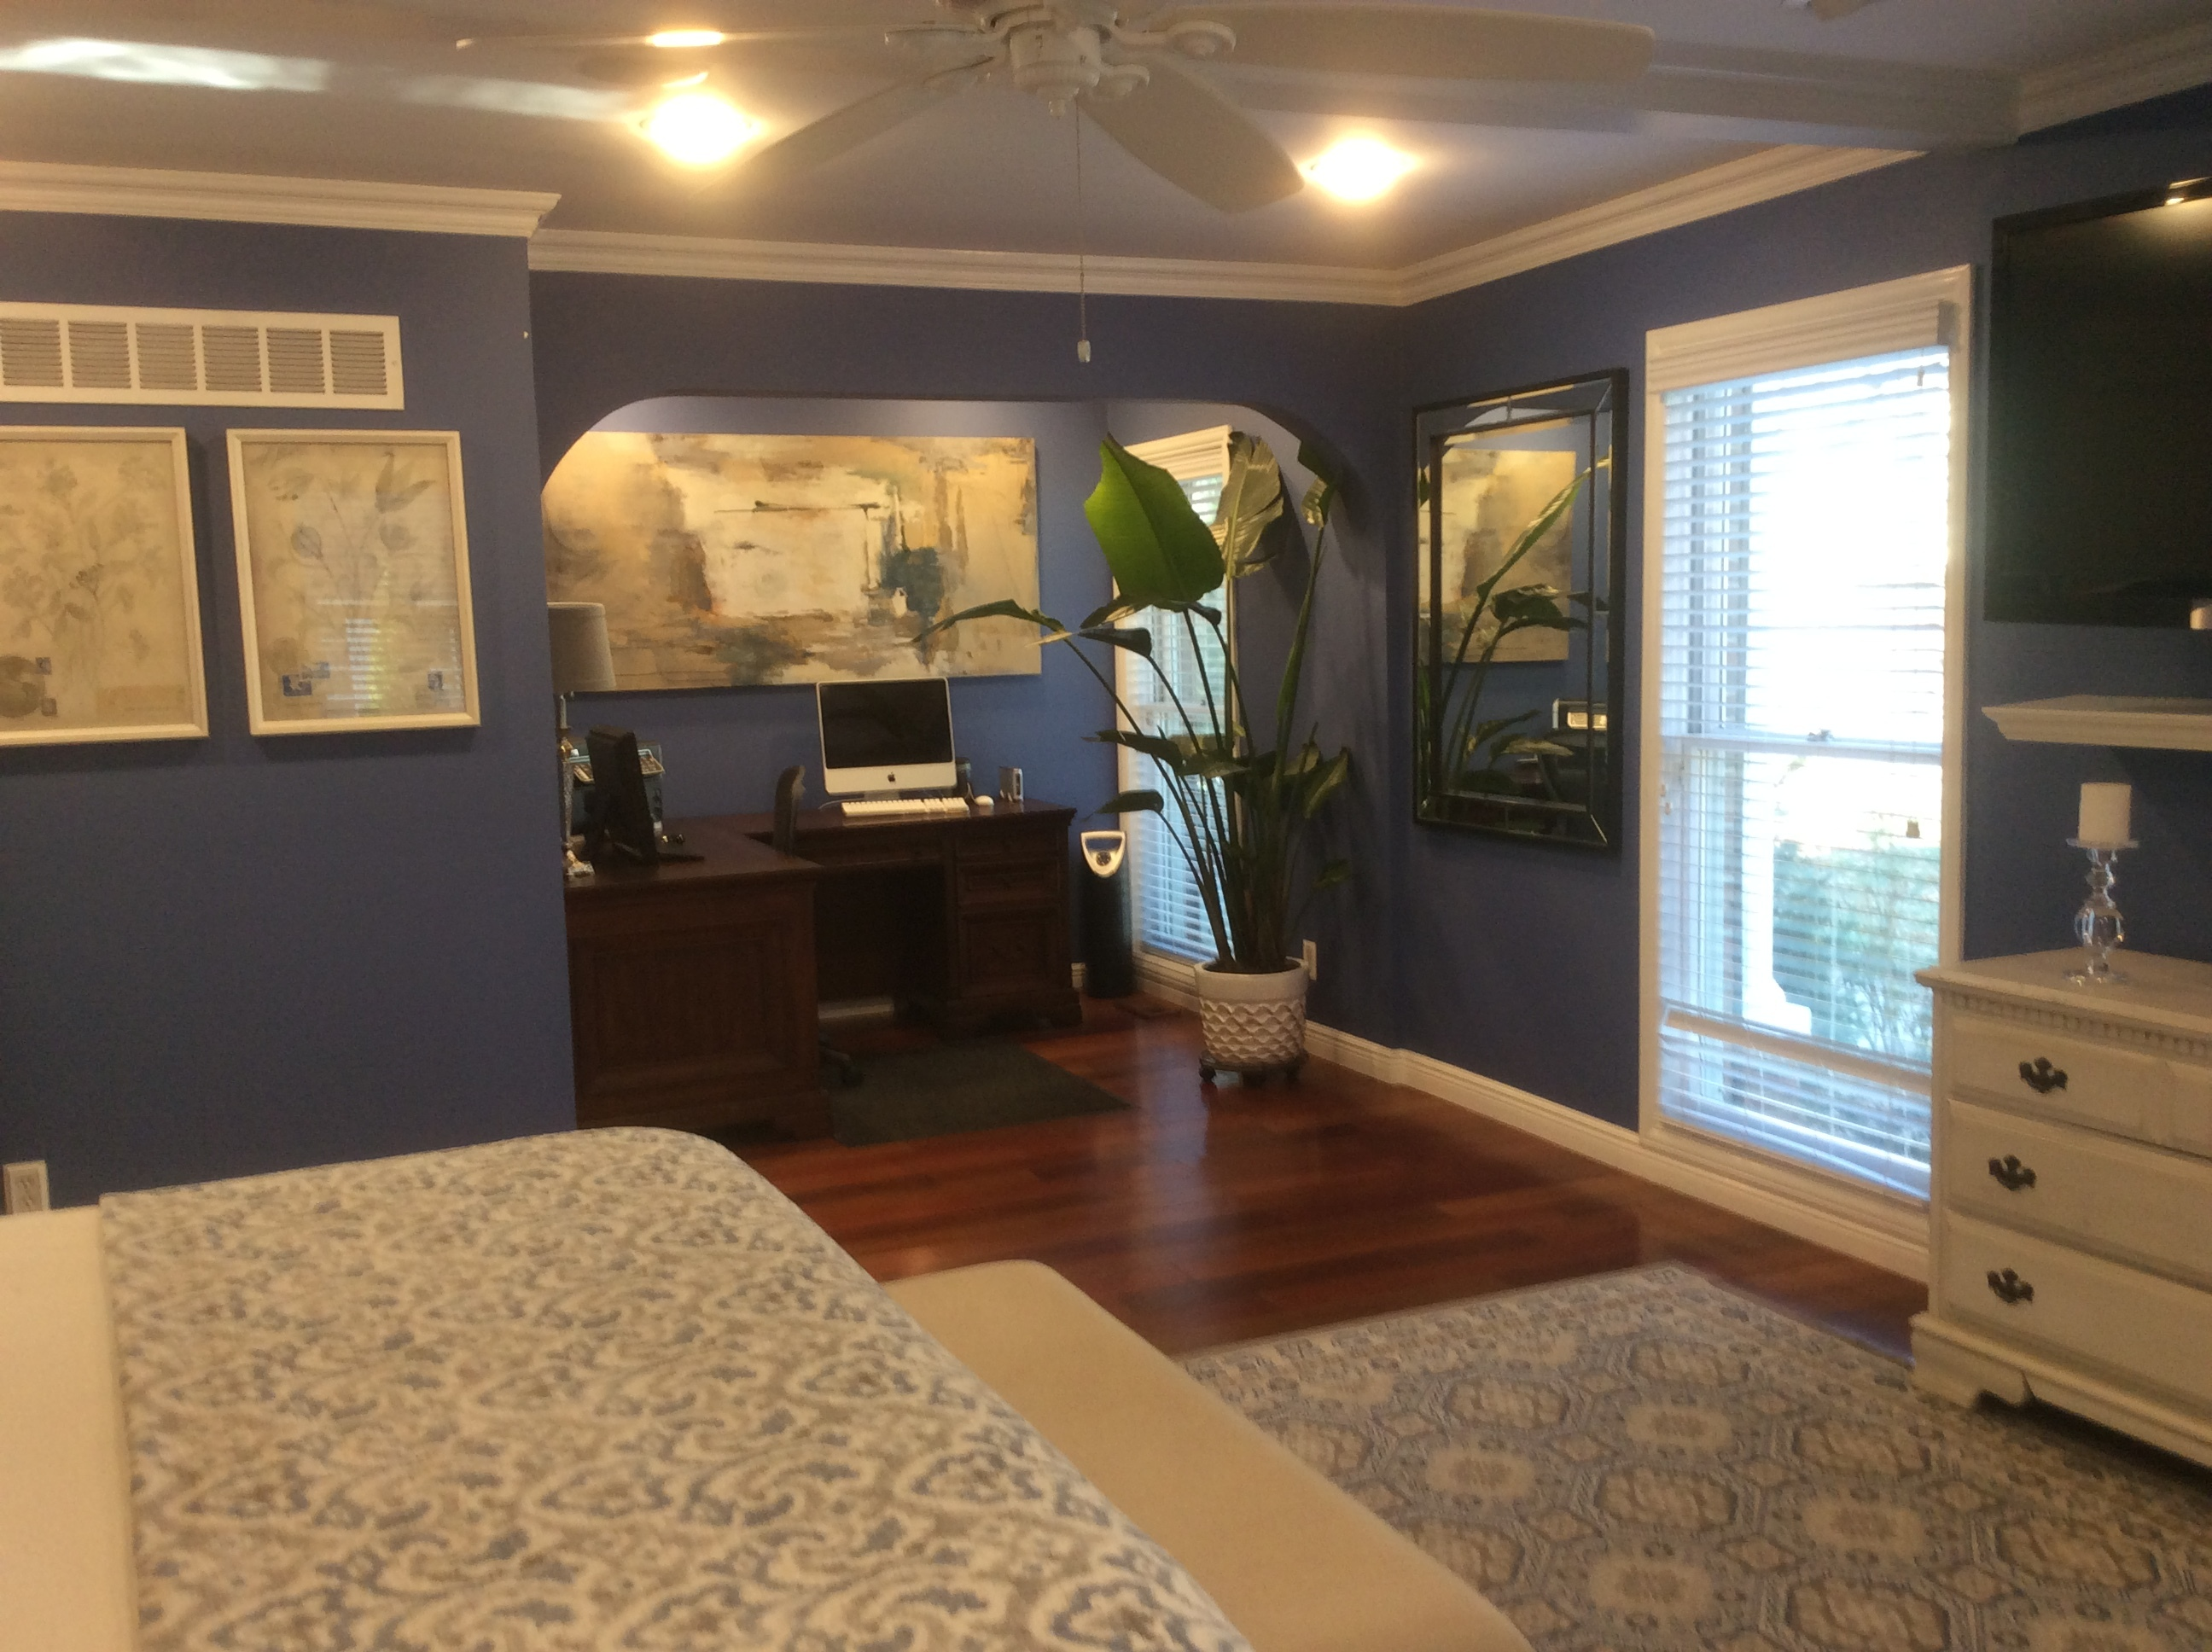 825 W 58th Street master with office nook